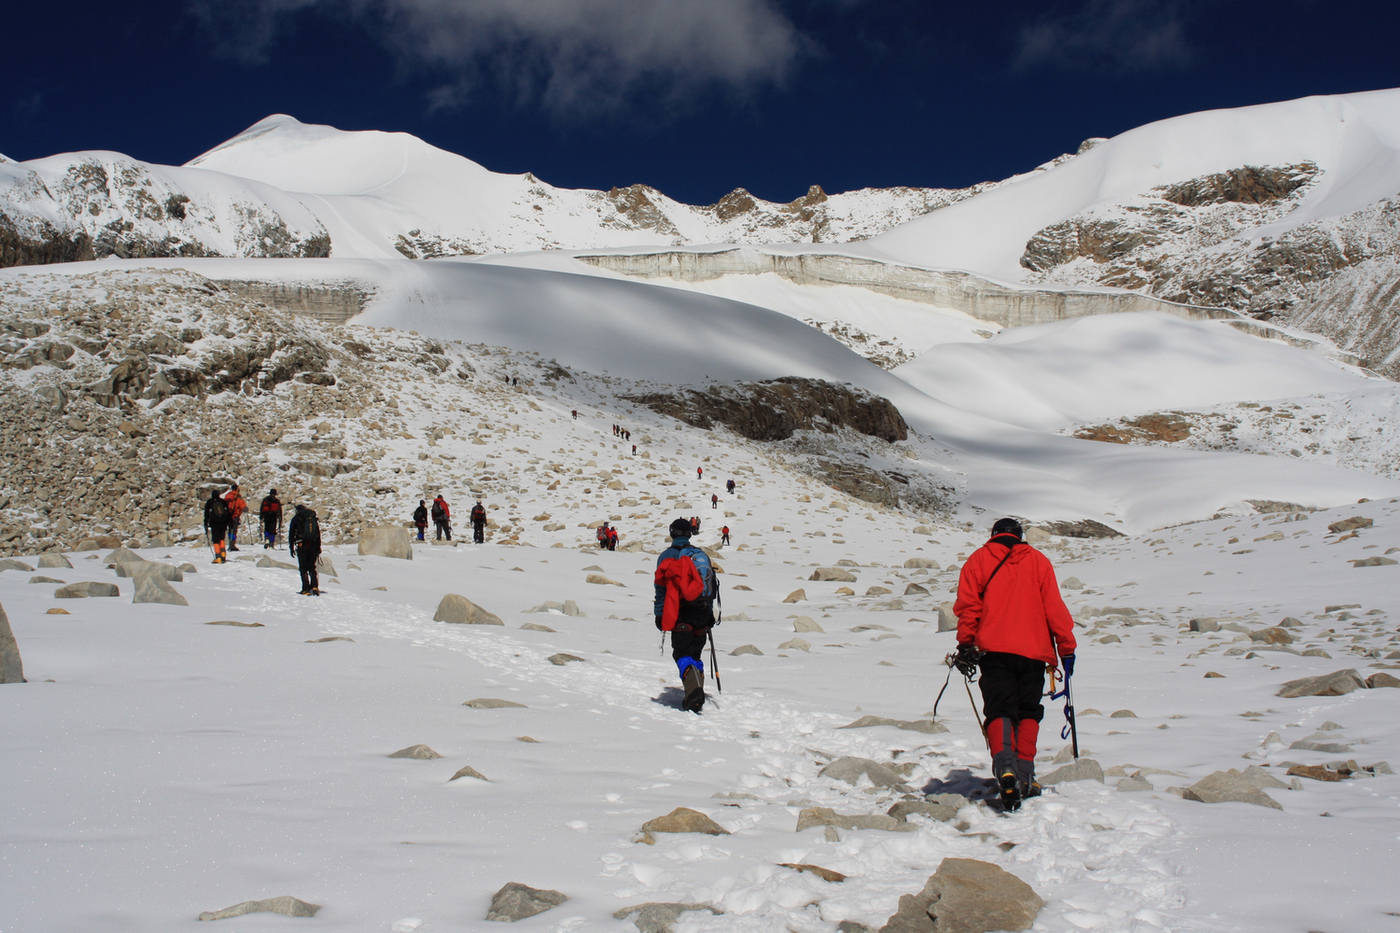 Tibet Receives 73 Foreign Mountaineering Groups Last Year